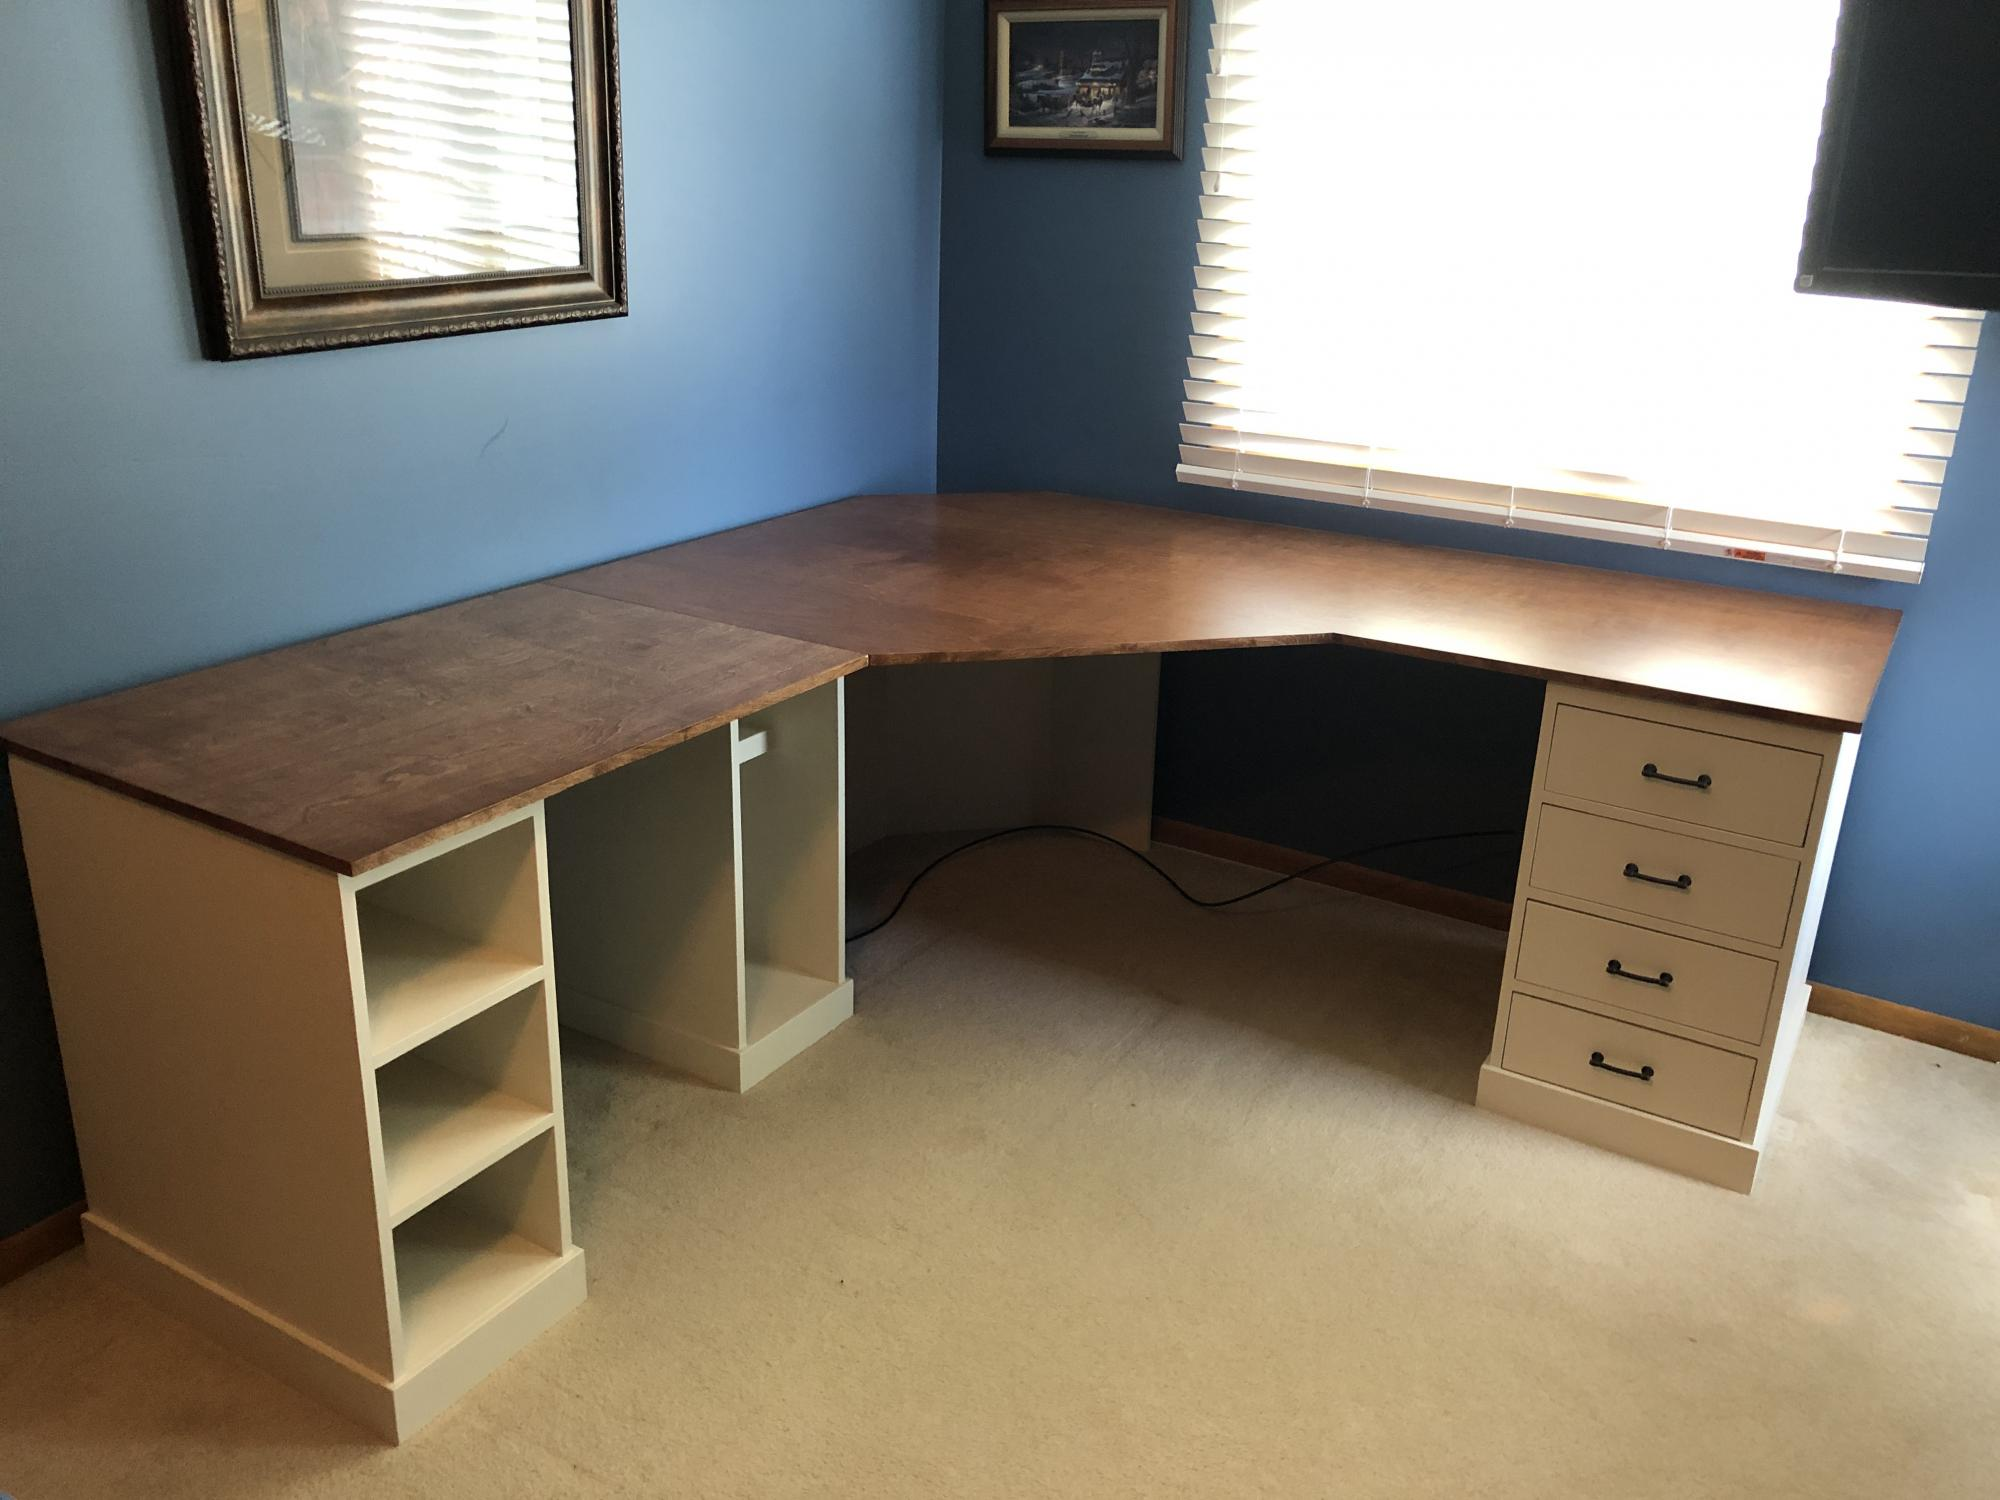 Desk with drawers and open cabinets  Ana White